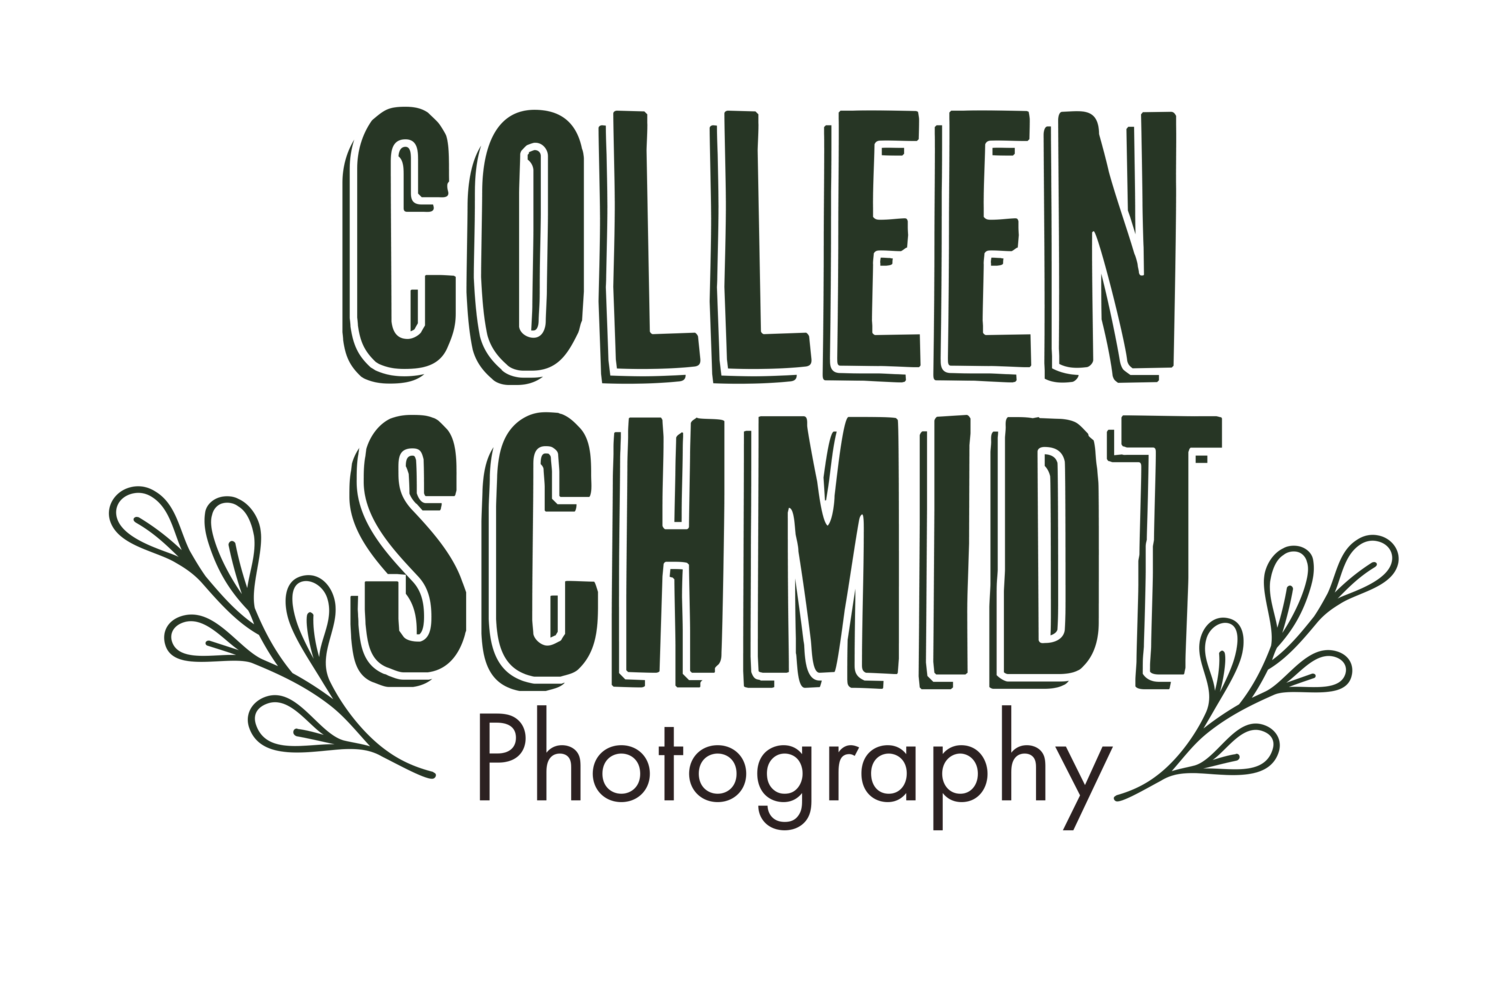 Colleen Schmidt Photo